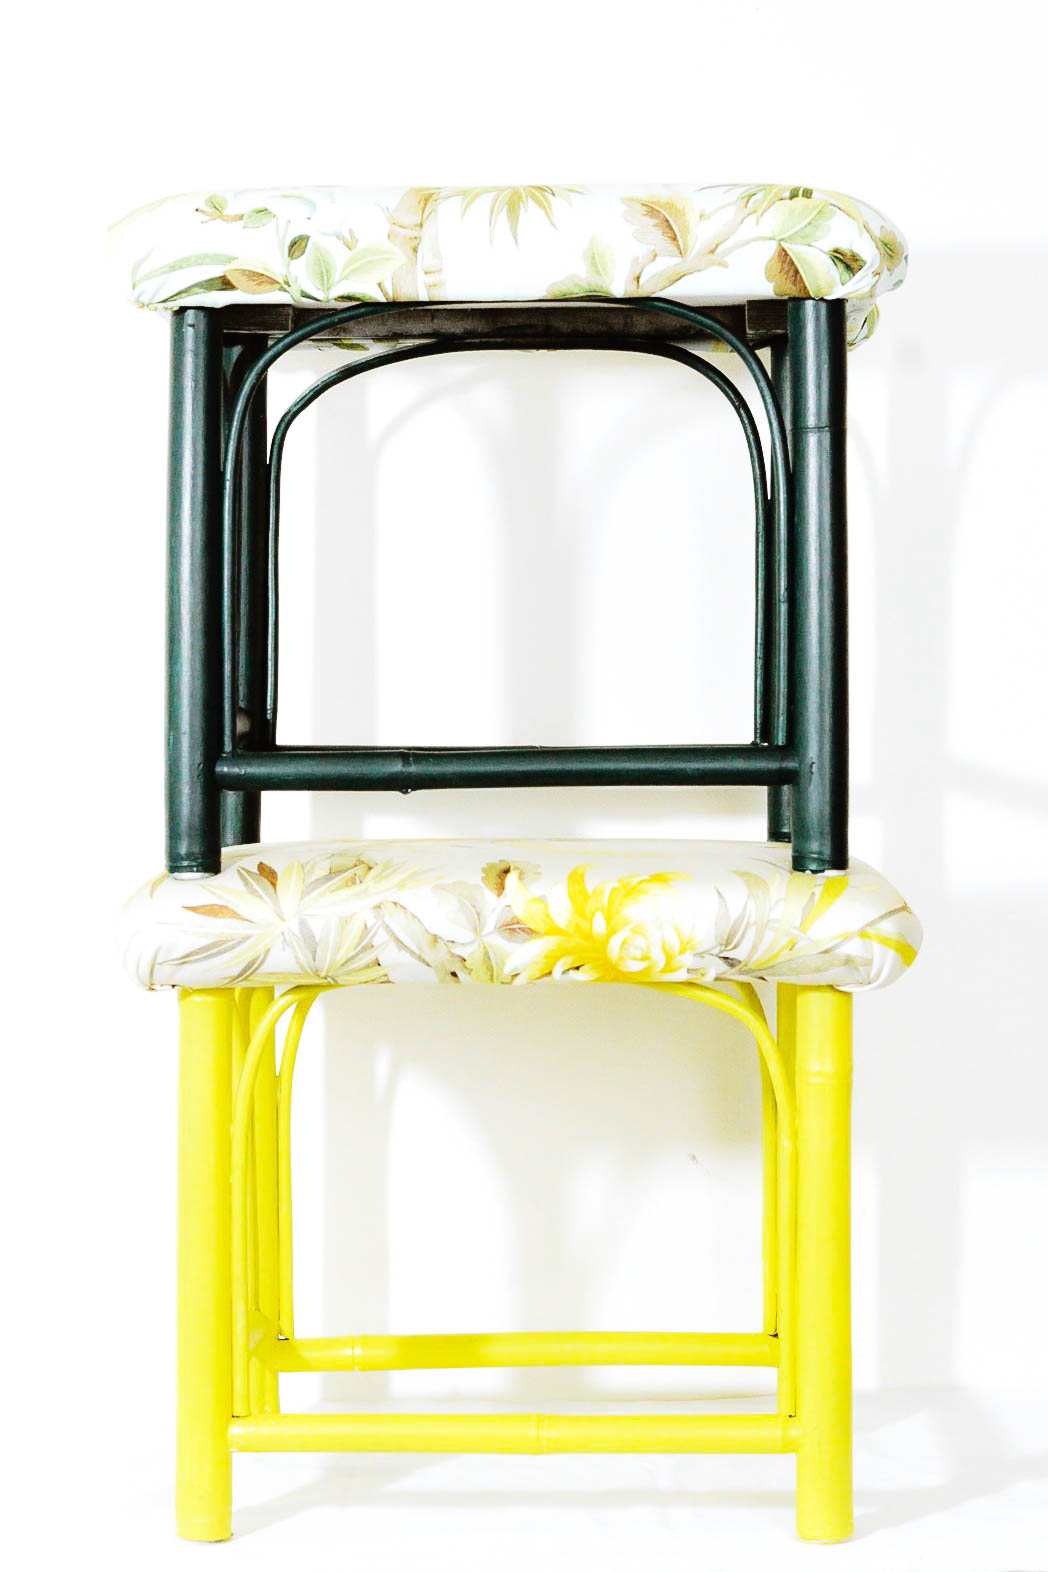 repurposed furniture | Ace Hardware paint | chinoiserie eclectic stools | free cycle